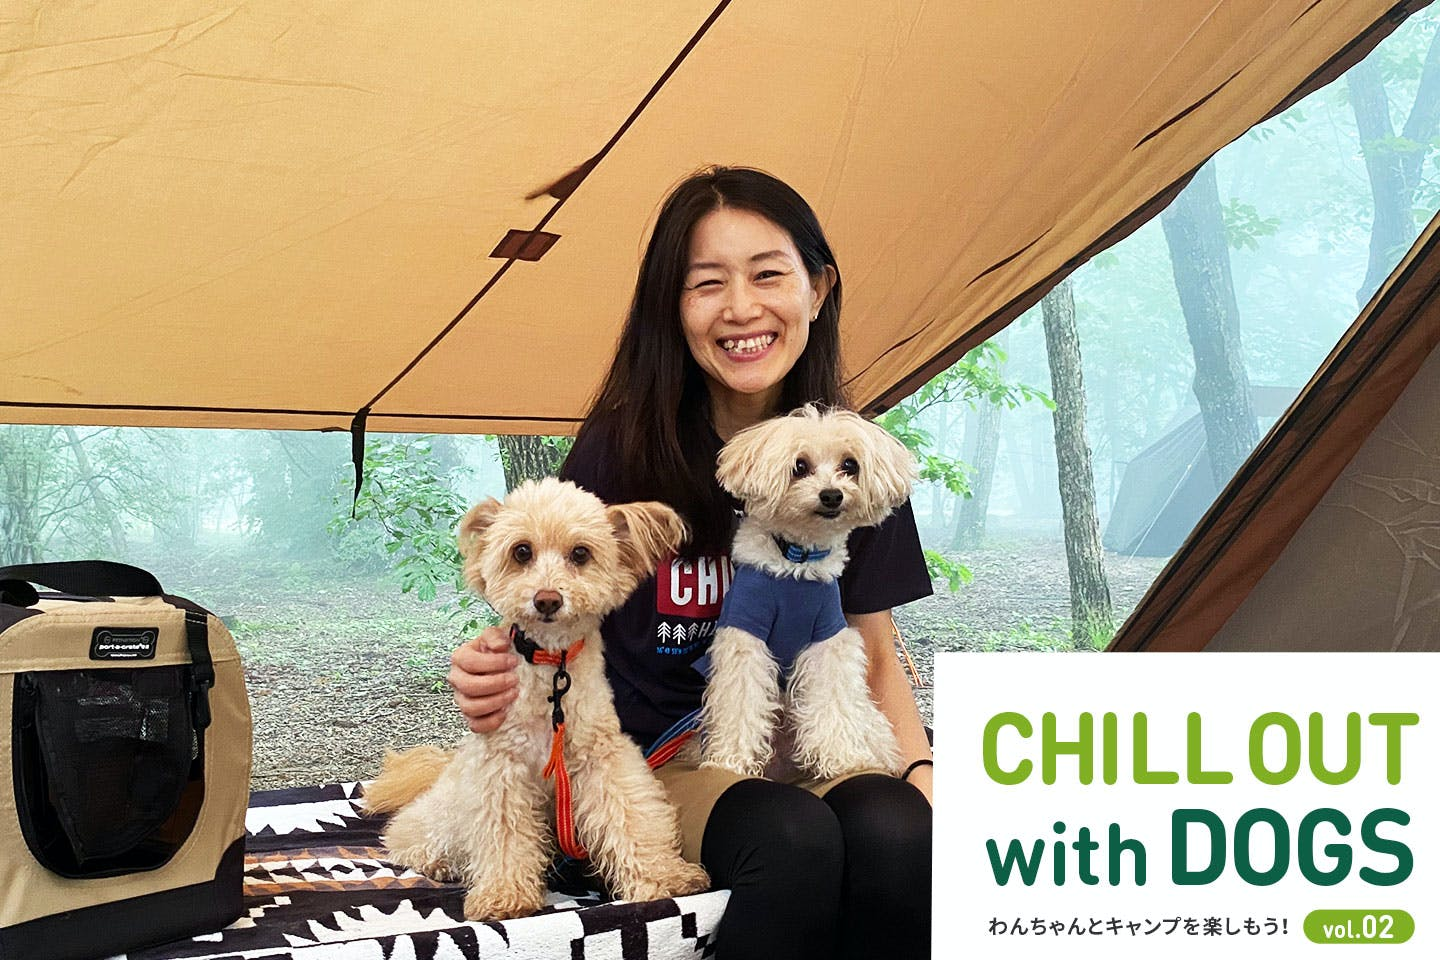 CHILL OUT with DOGS 愛犬とまったりキャンプに出かけよう!